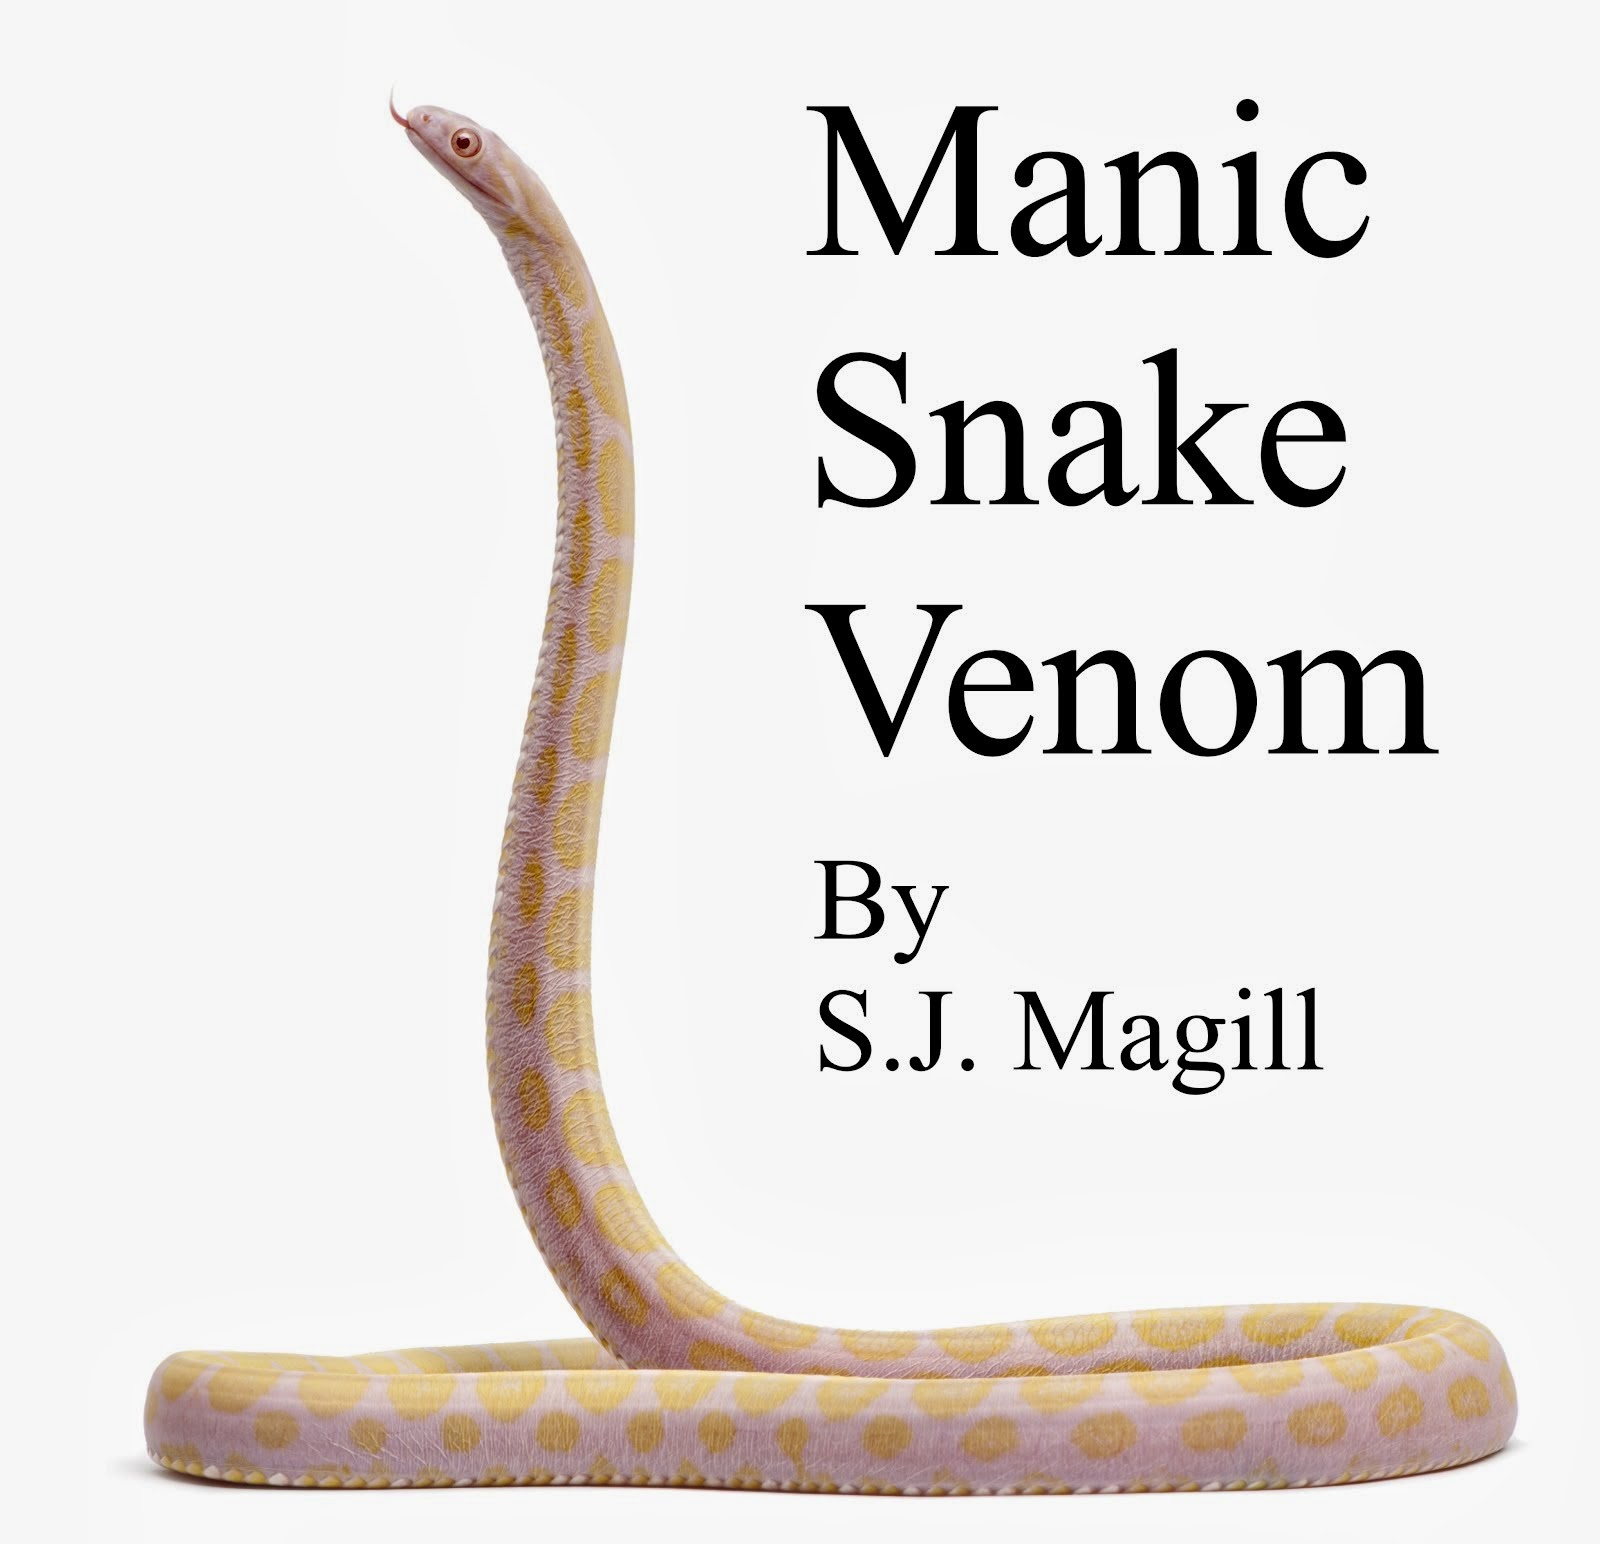 Manic Snake Venom (Link to Amazon.com)